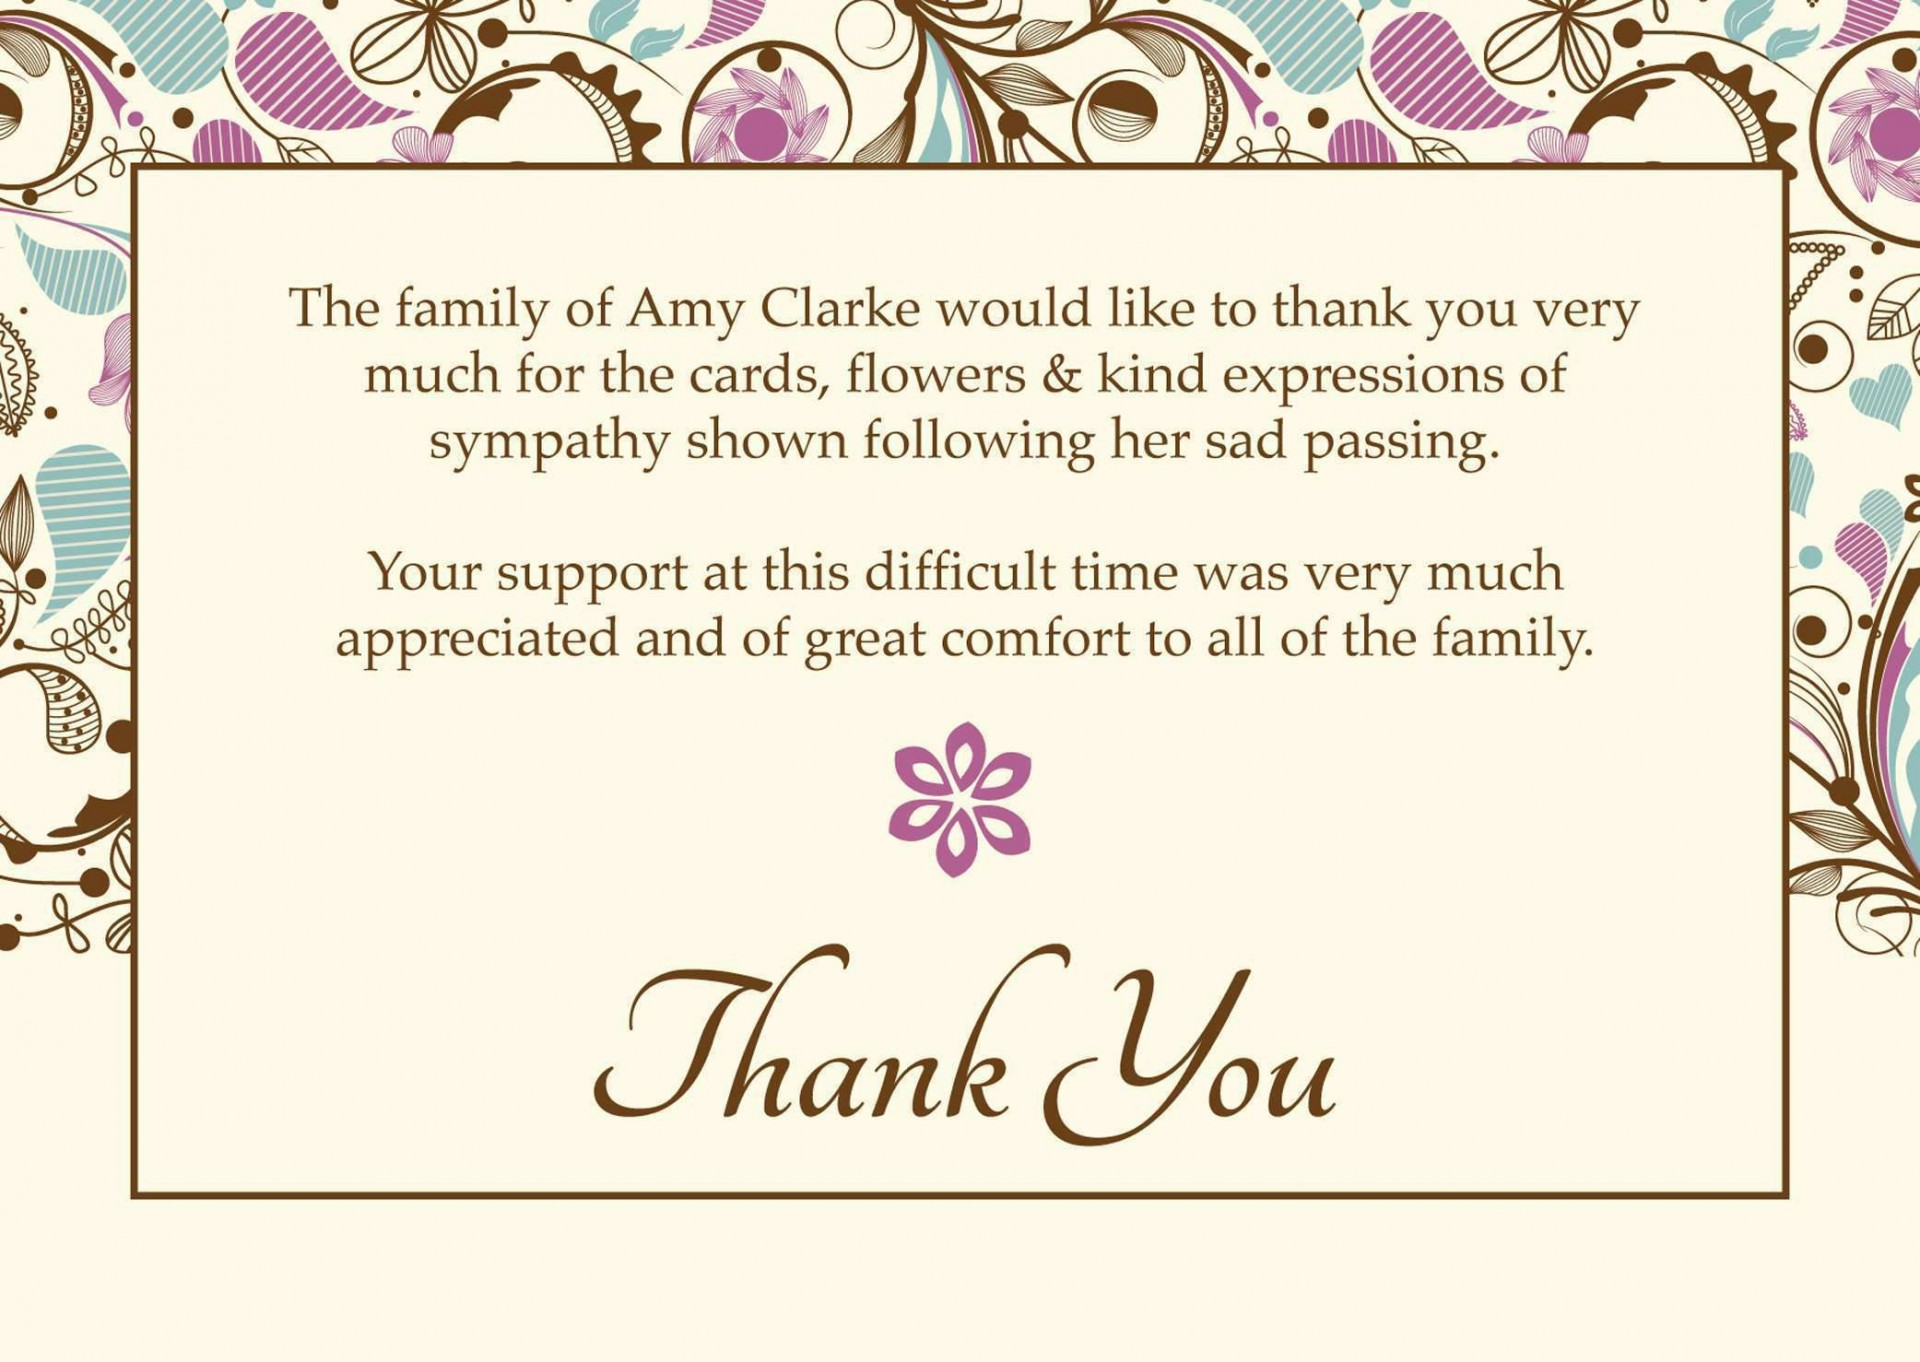 004 Fascinating Thank You Note Template Microsoft Word Picture  Card Free Funeral Letter1920